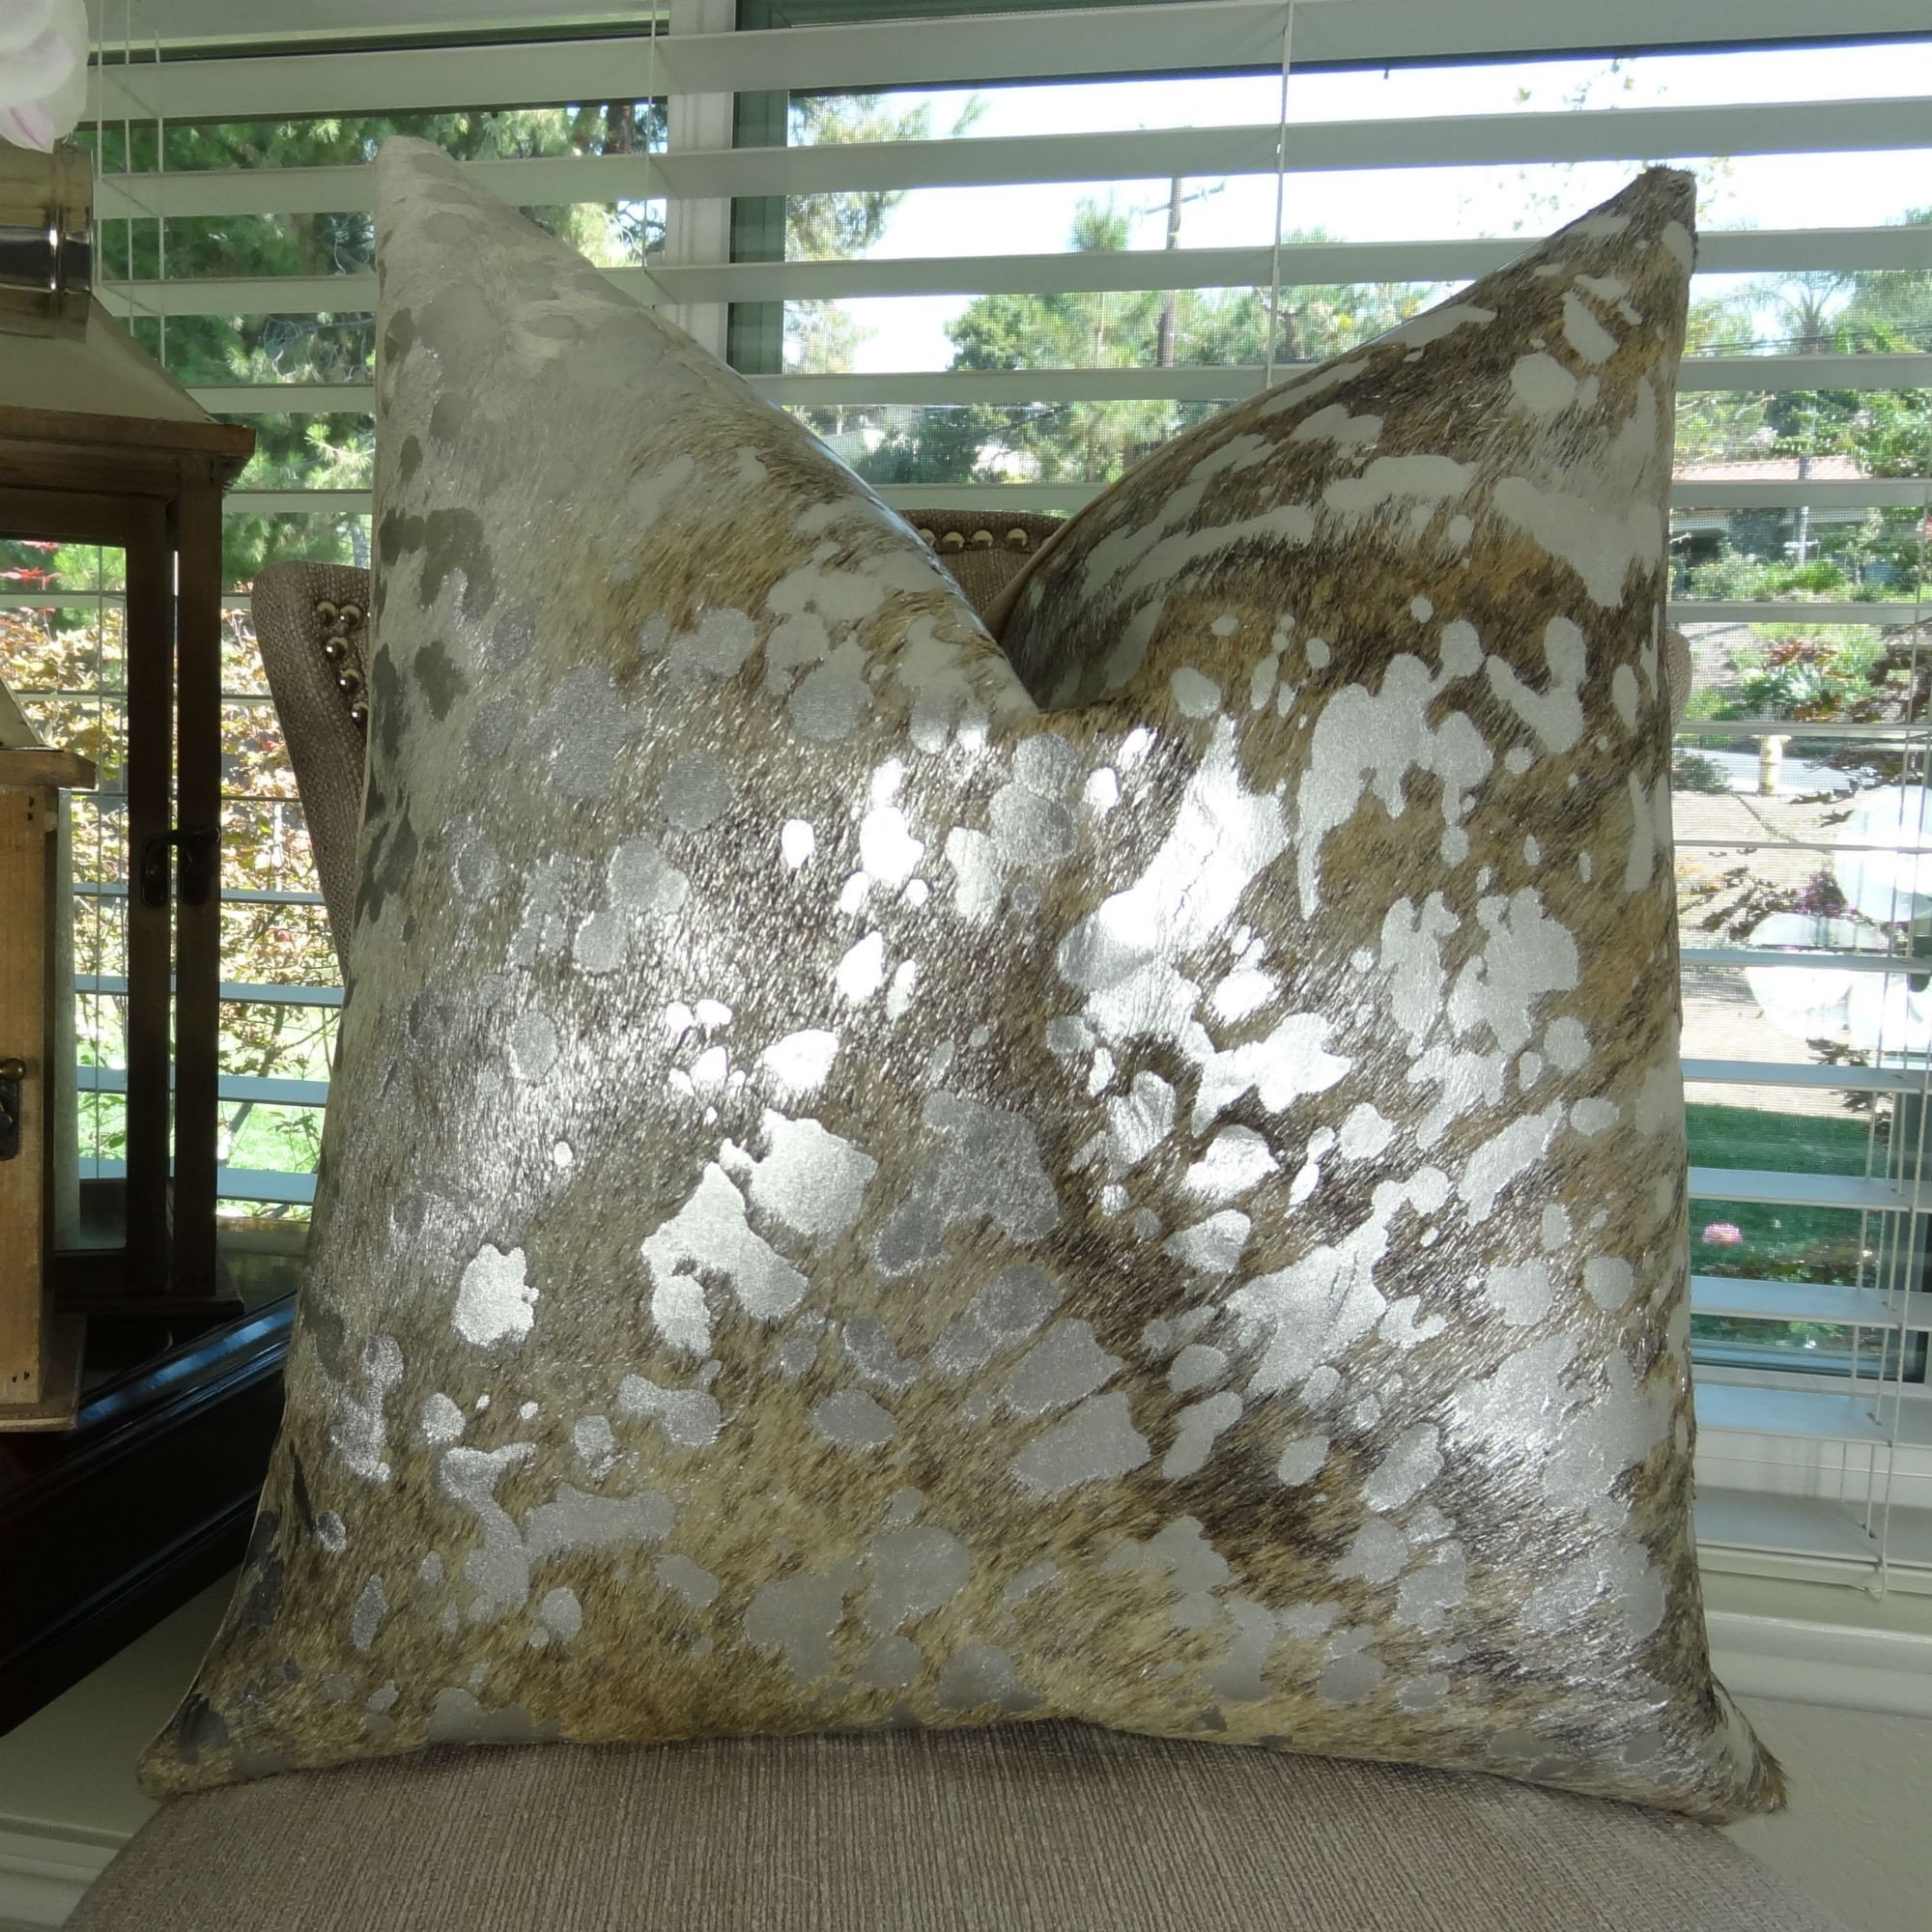 Thomas Collection animal themed throw pillows, silver cowhide throw pillow, Silver Metallic Light Brindle Tan Devore Brazilian Cowhide Throw Pillow, INCLUDES POLYFILL INSERT, Handmade in USA, 16635 by Thomas Collection